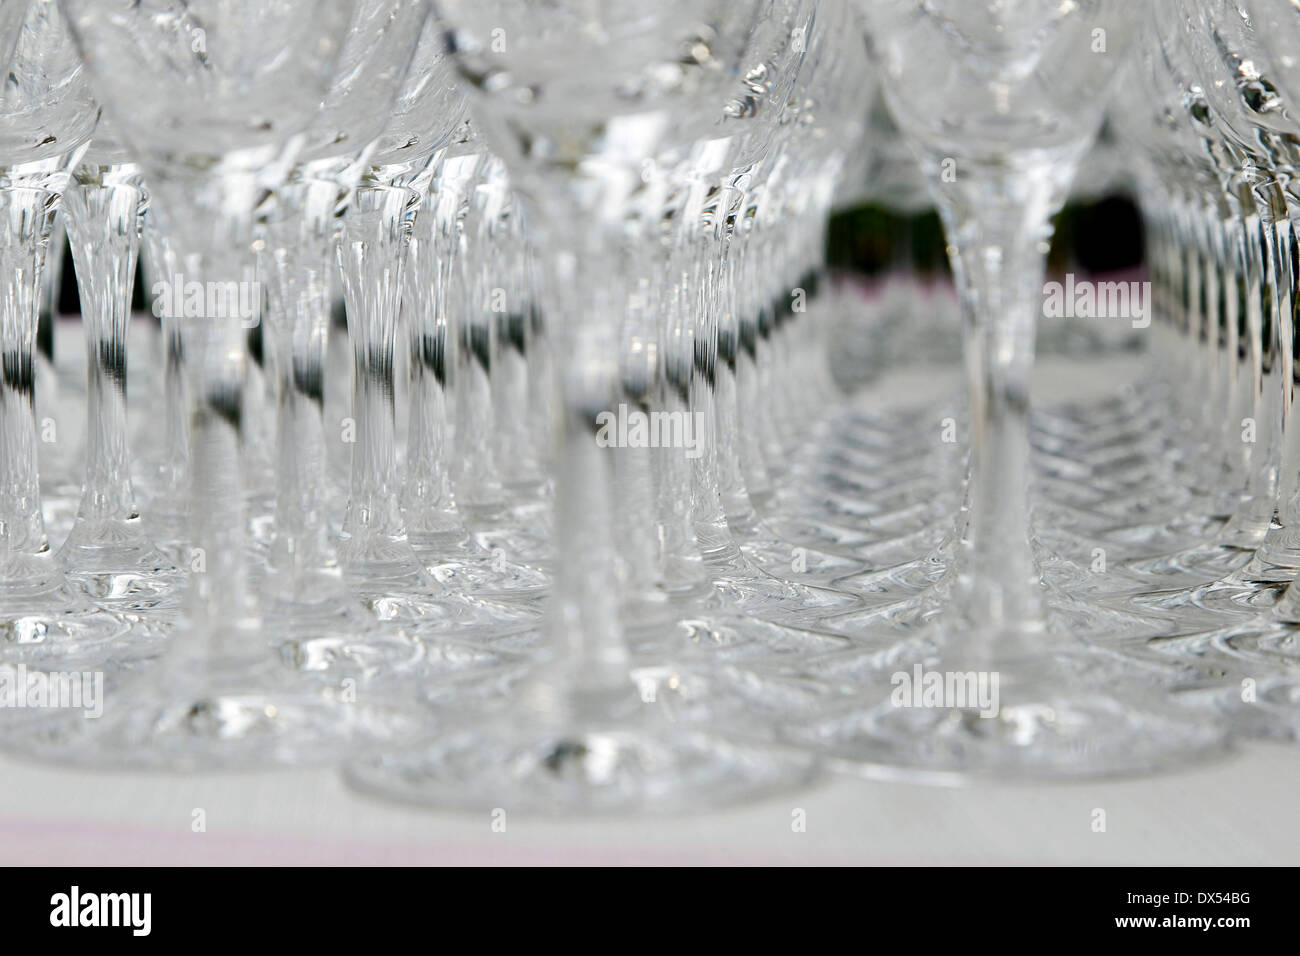 Wine glasses lined up on a table - Stock Image